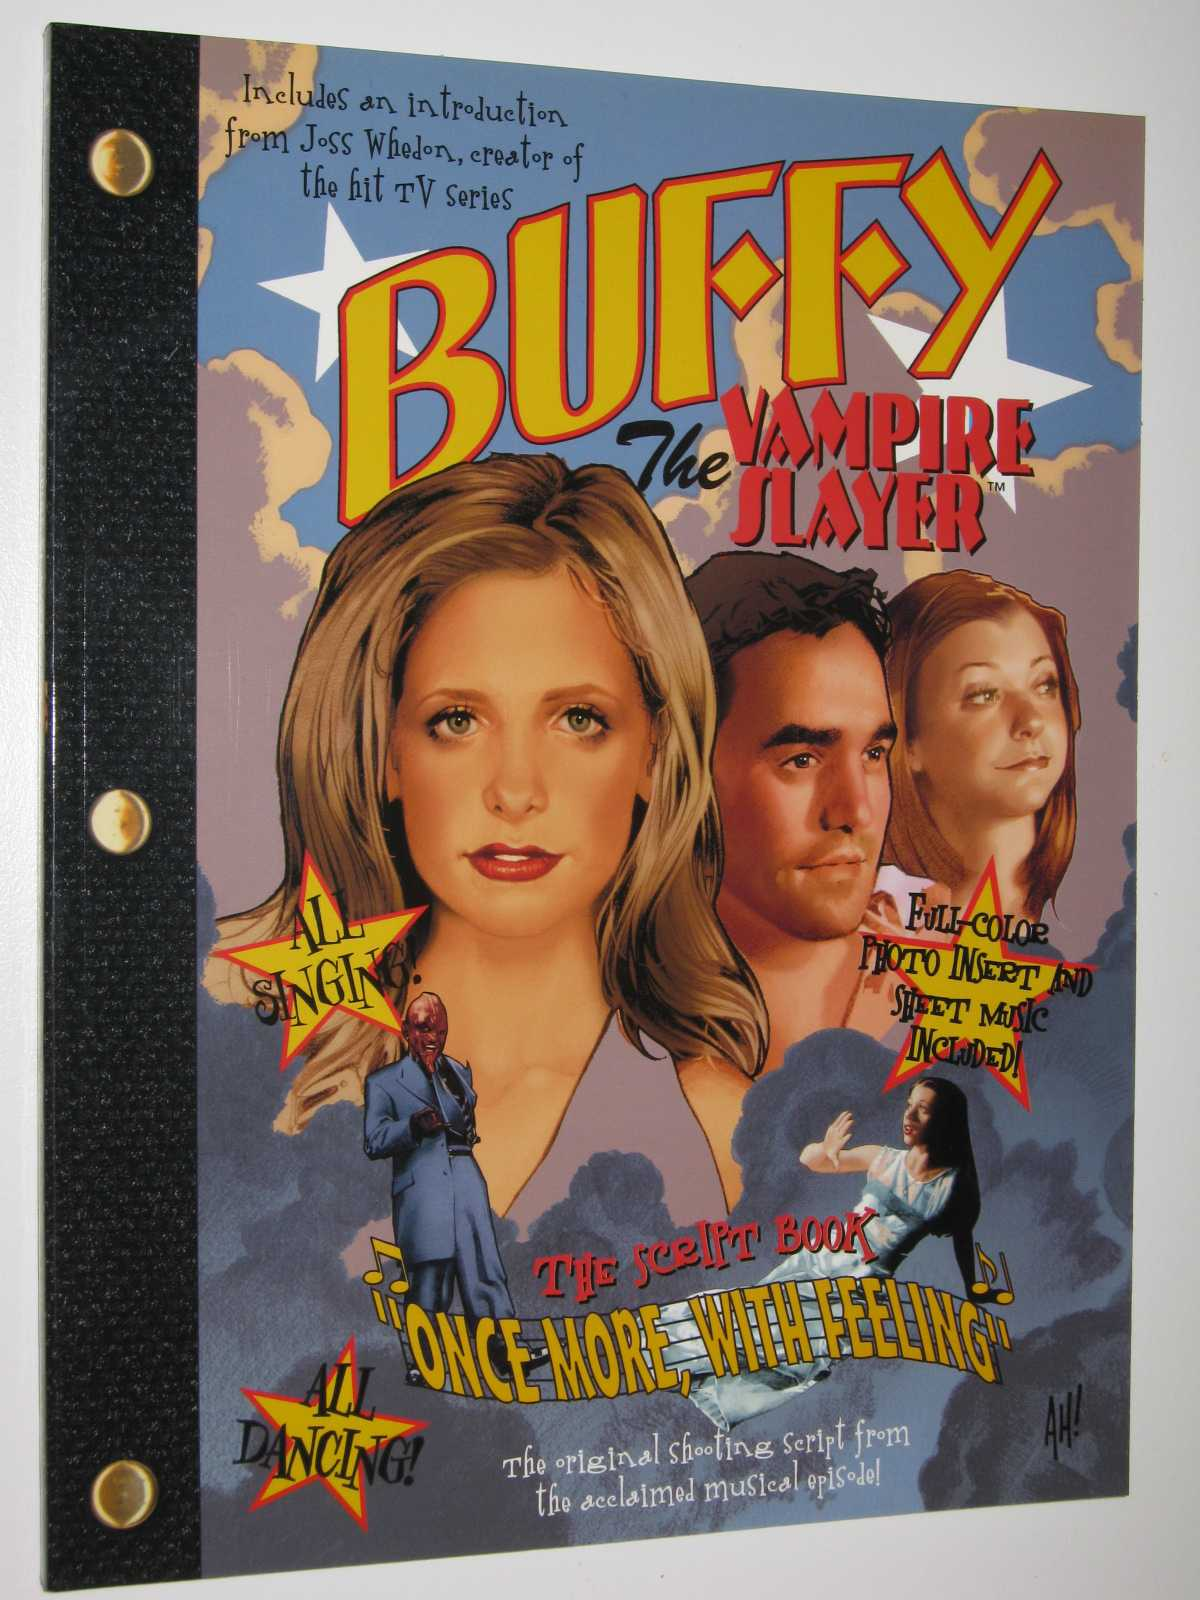 Image for Once More With Feeling - Buffy the Vampire Slayer Series